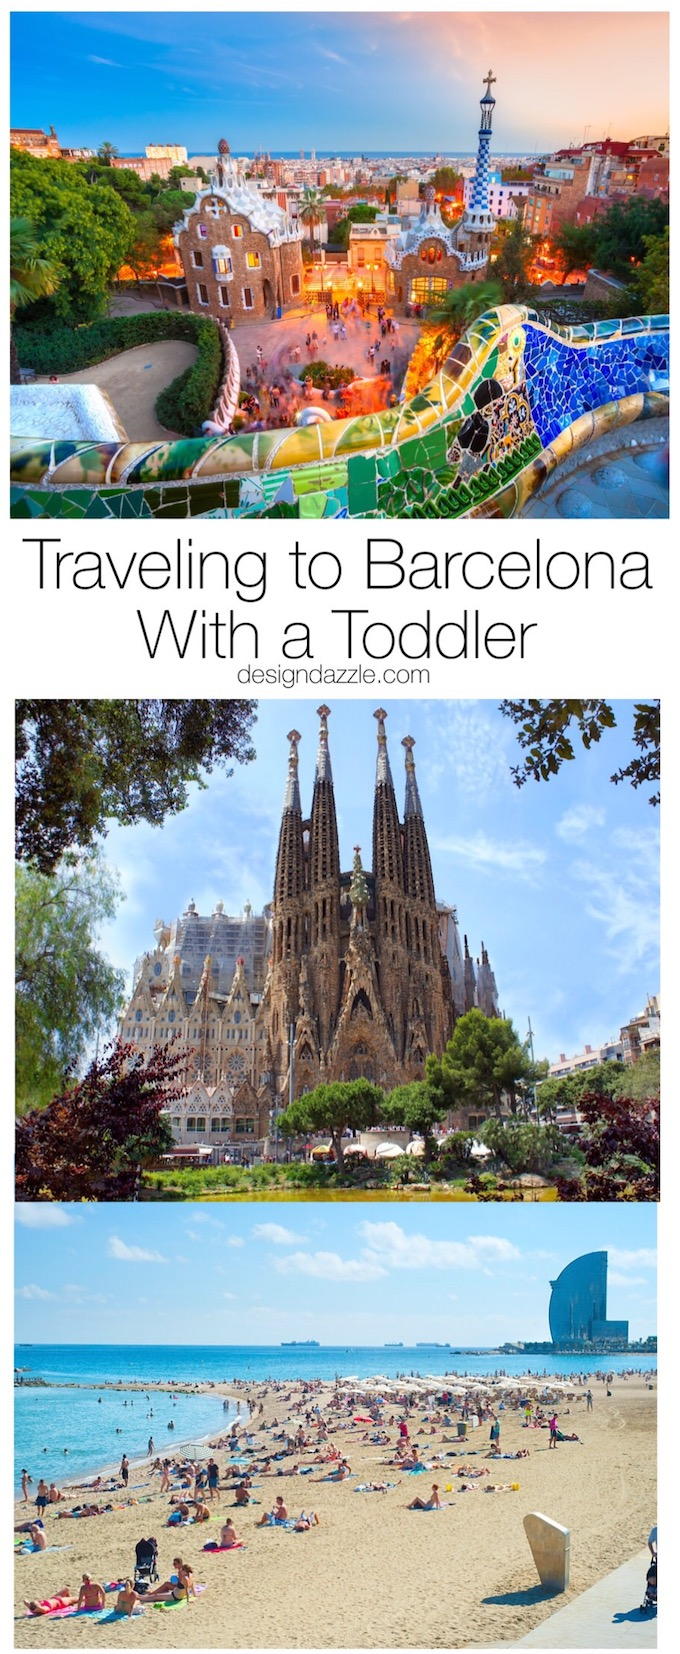 Traveling to Barcelona with a toddler can be both amazing and challenging. Here are some tips and suggestions to help make your trip to Barcelona memorable!   Design Dazzle